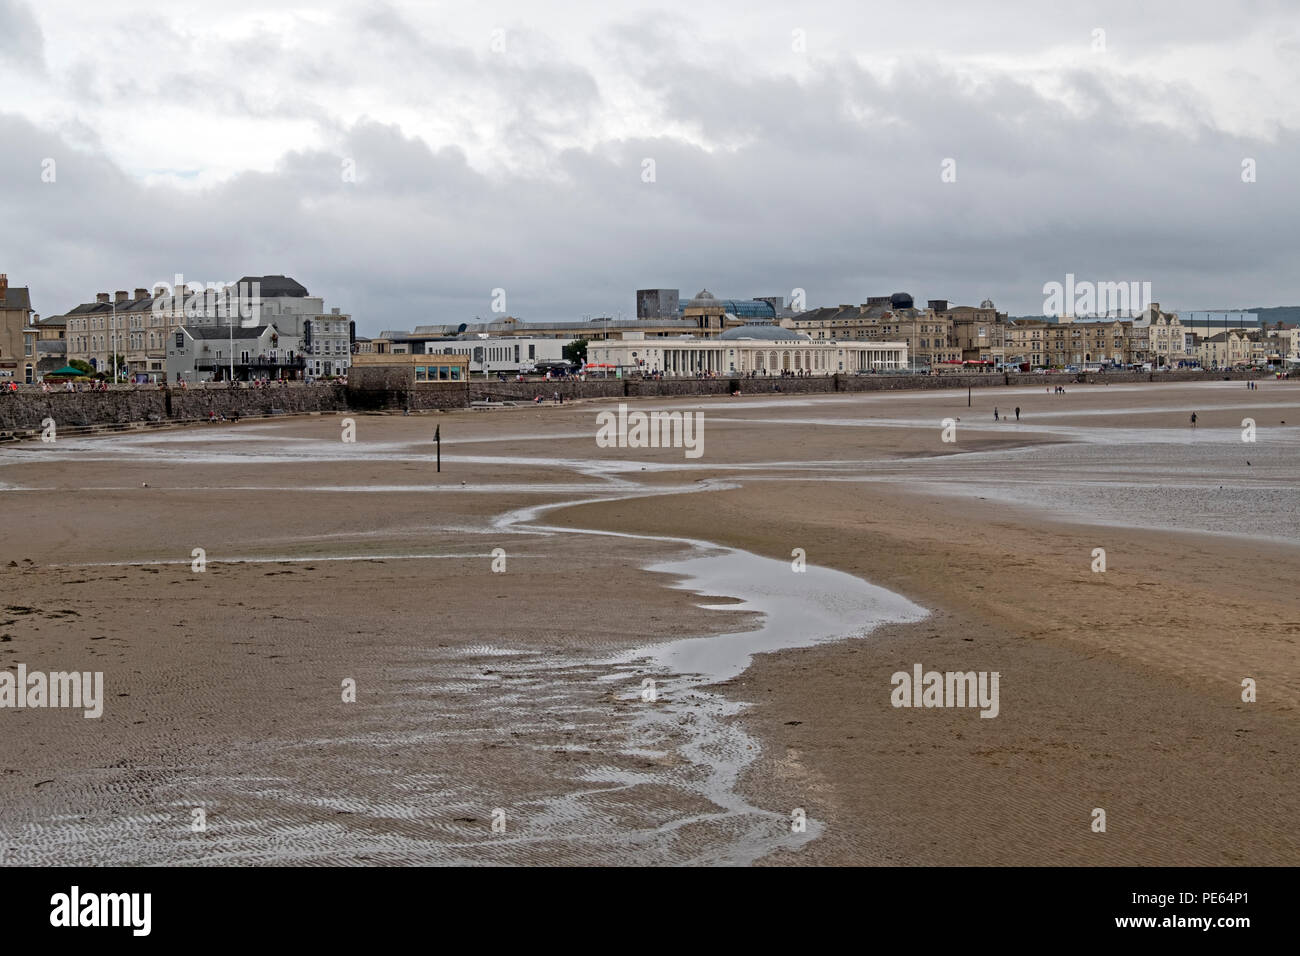 Weston-super-Mare, UK. 12th August, 2018. UK weather: after many hours of rain, a dry but overcast and breezy Sunday afternoon failed to bring many holidaymakers onto the beach, with some of those who did venture out wearing coats. Keith Ramsey/Alamy Live News - Stock Image